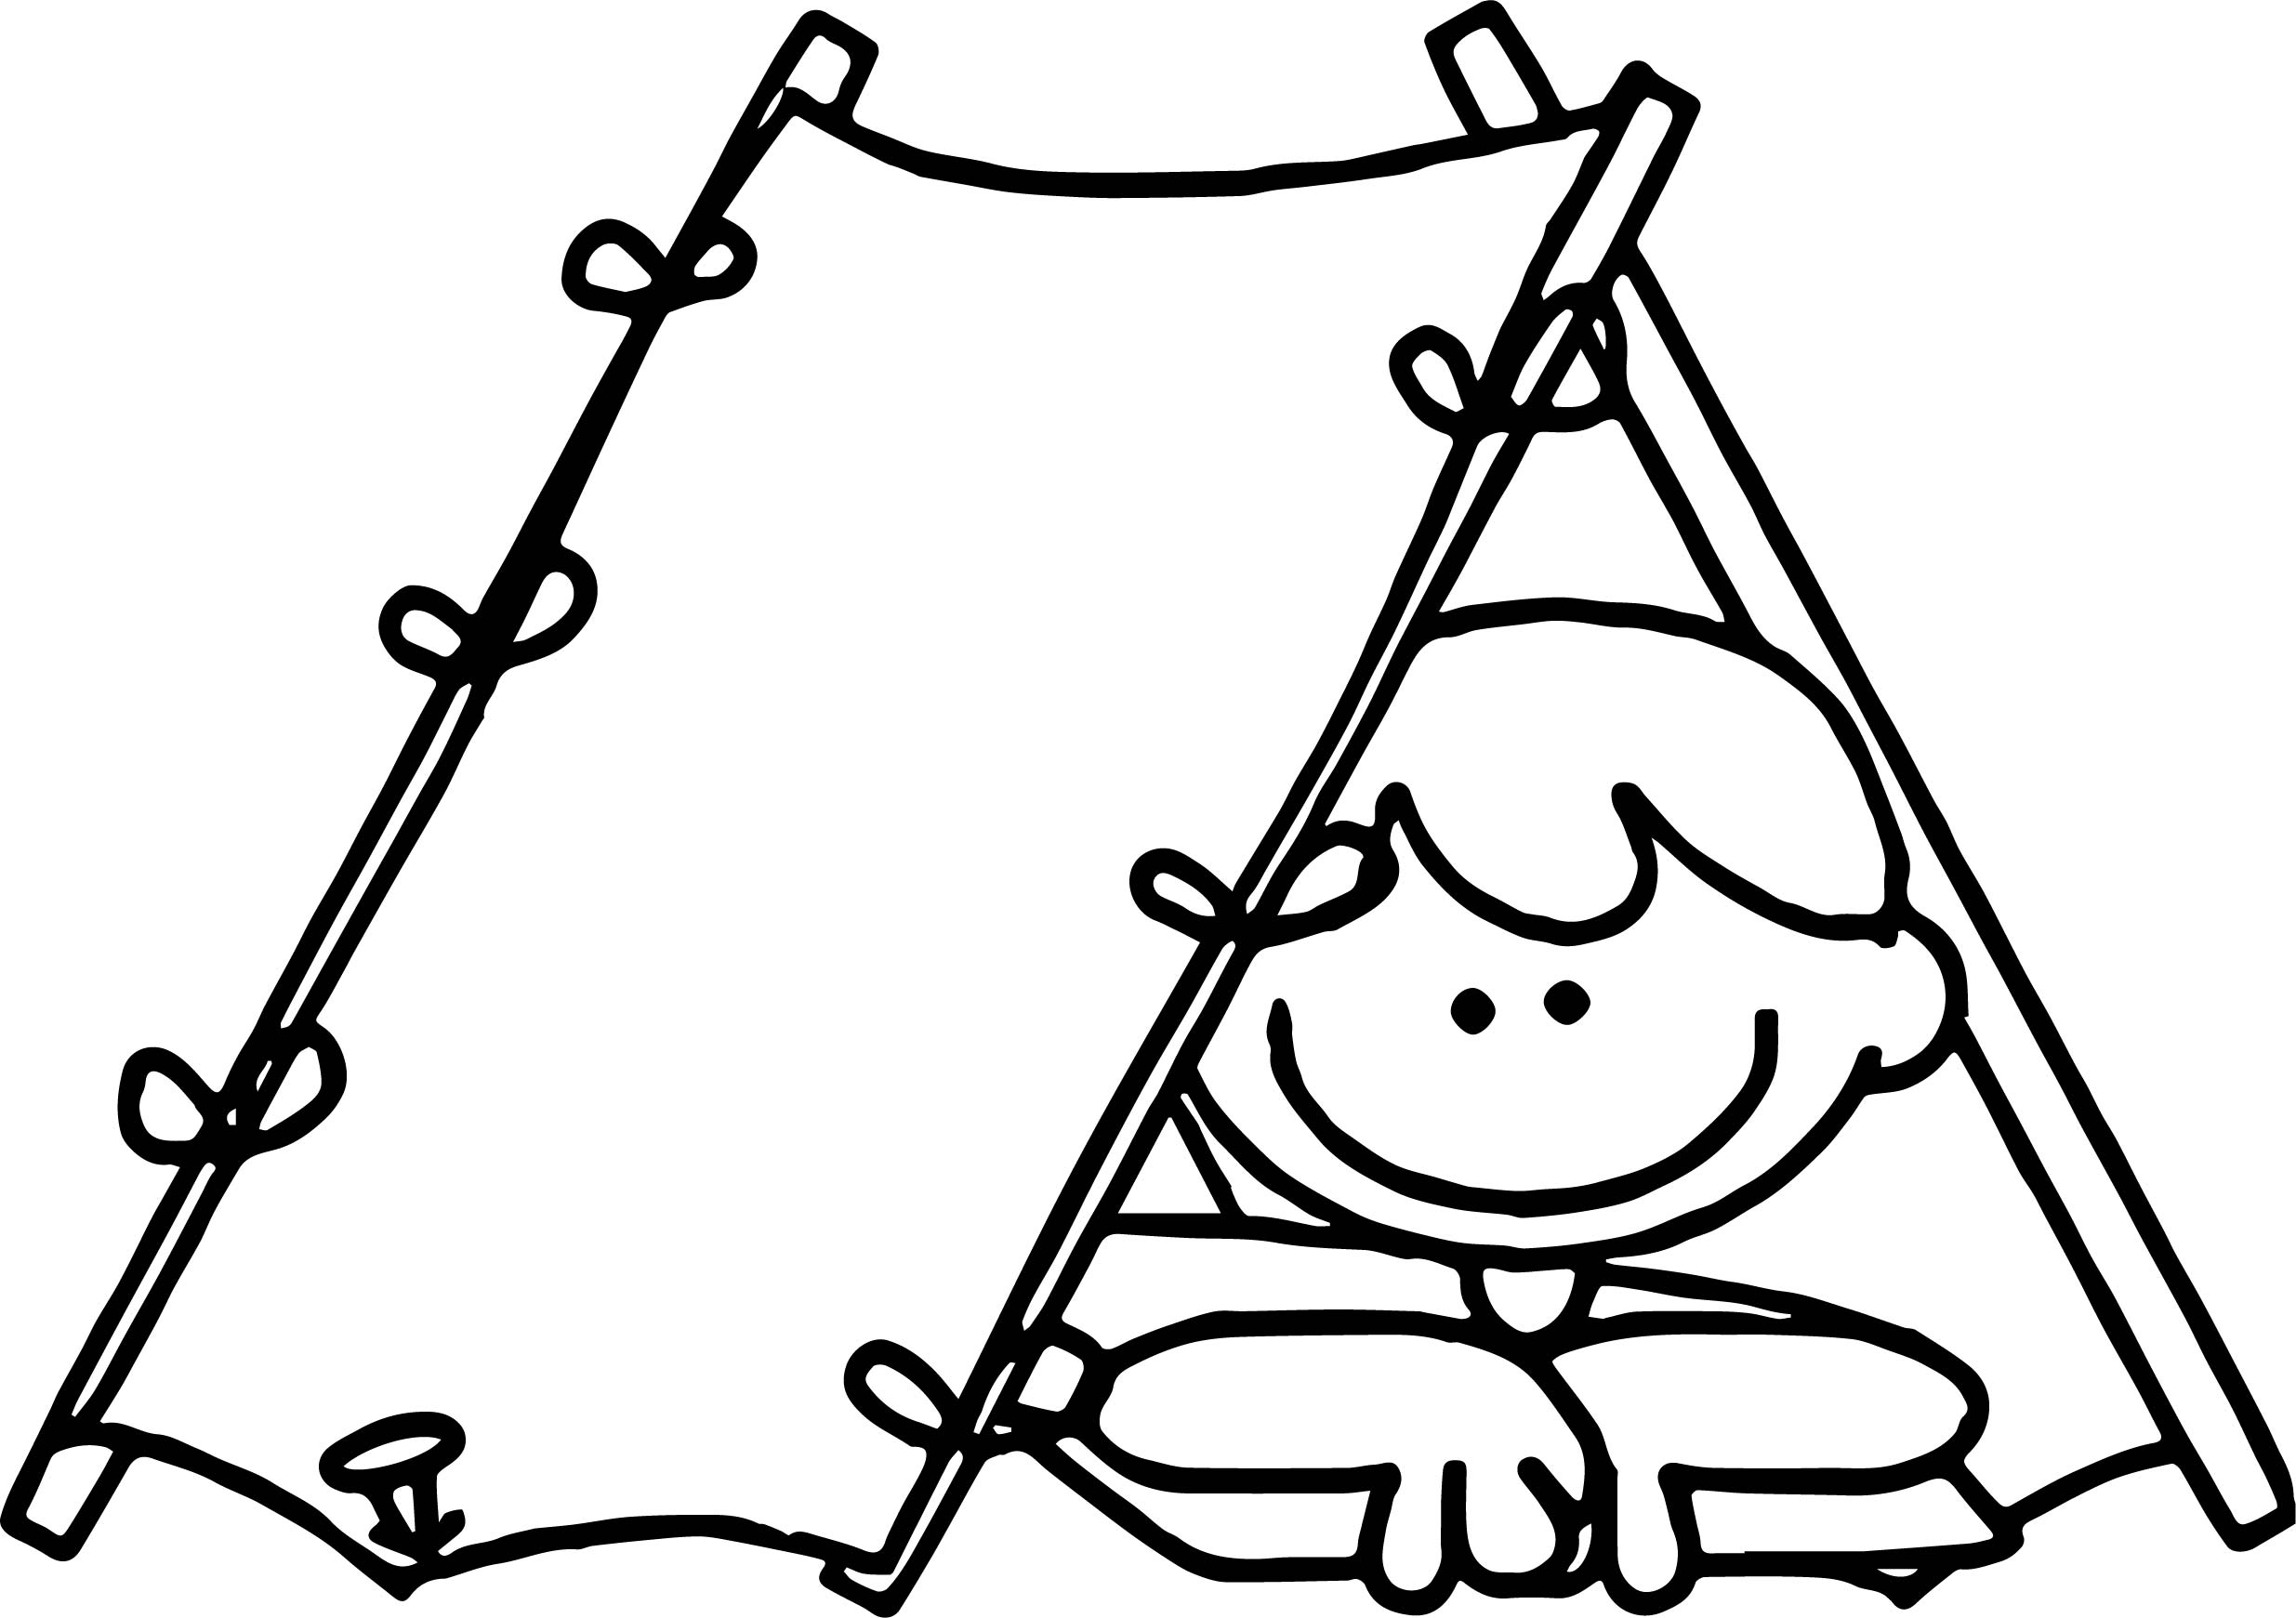 Cabin Camping Coloring Page Wecoloringpage Com